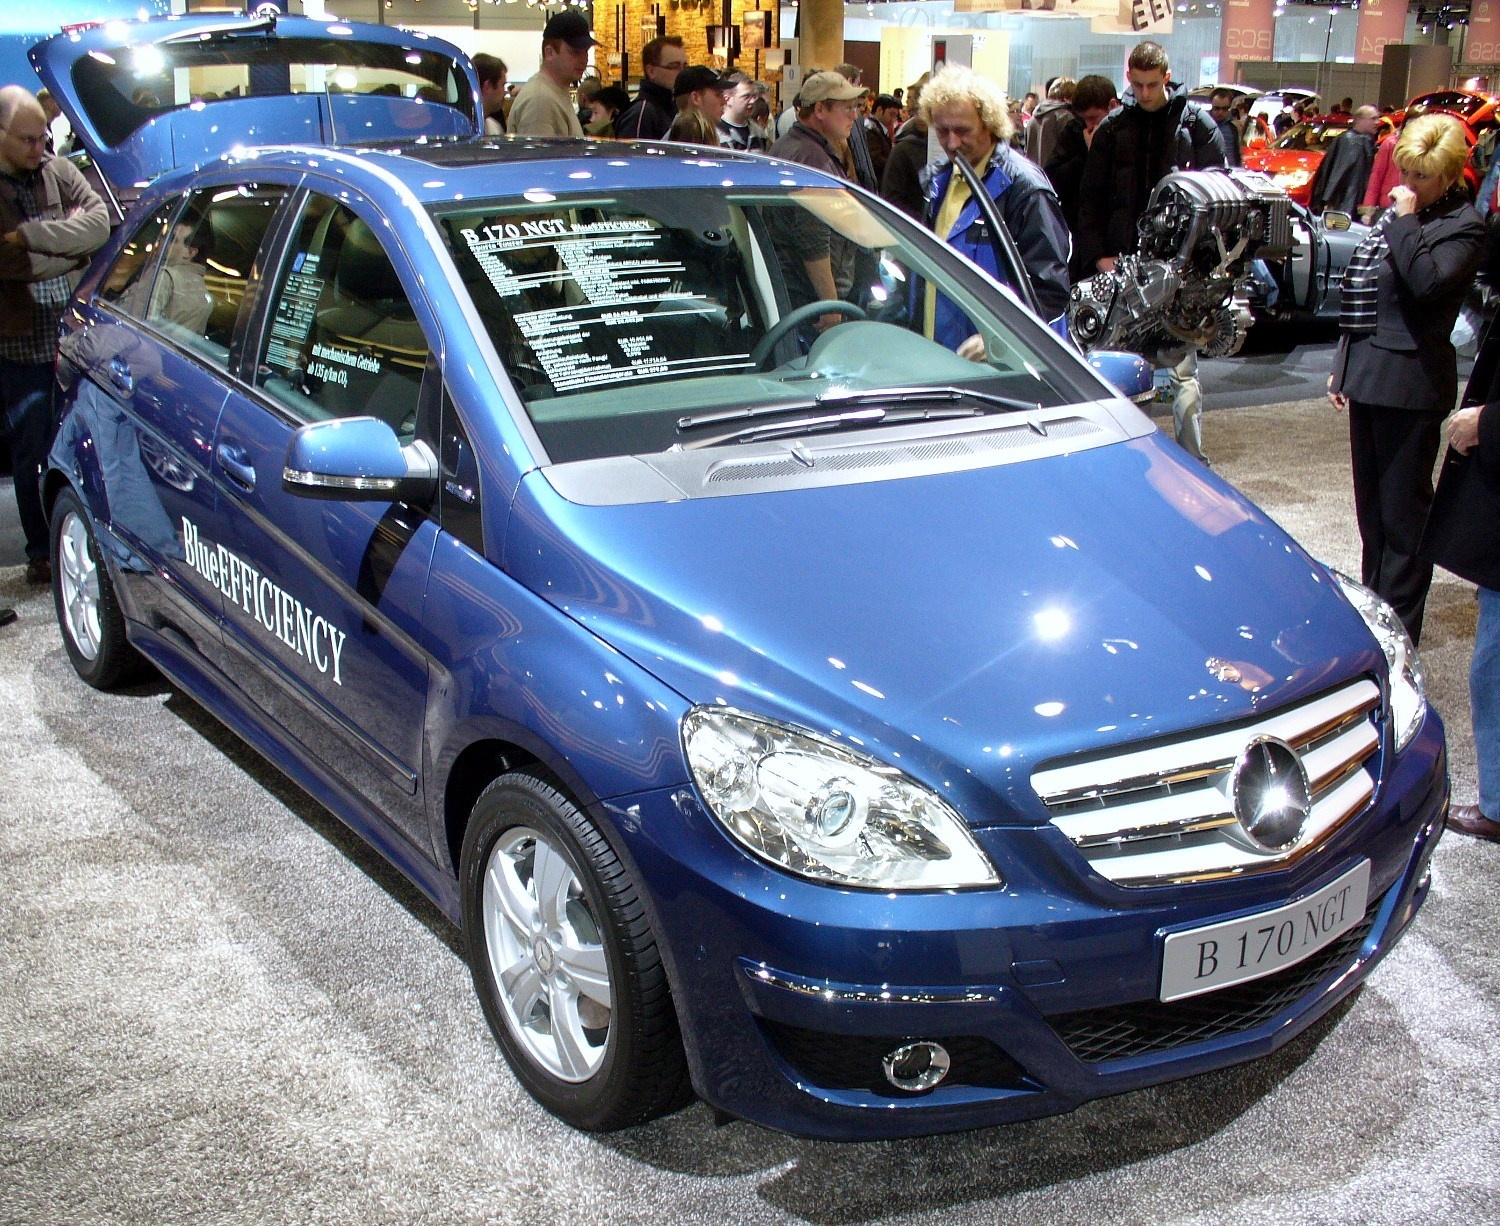 filemercedes benz w245 b170 ngt blueefficiency facelift jpg